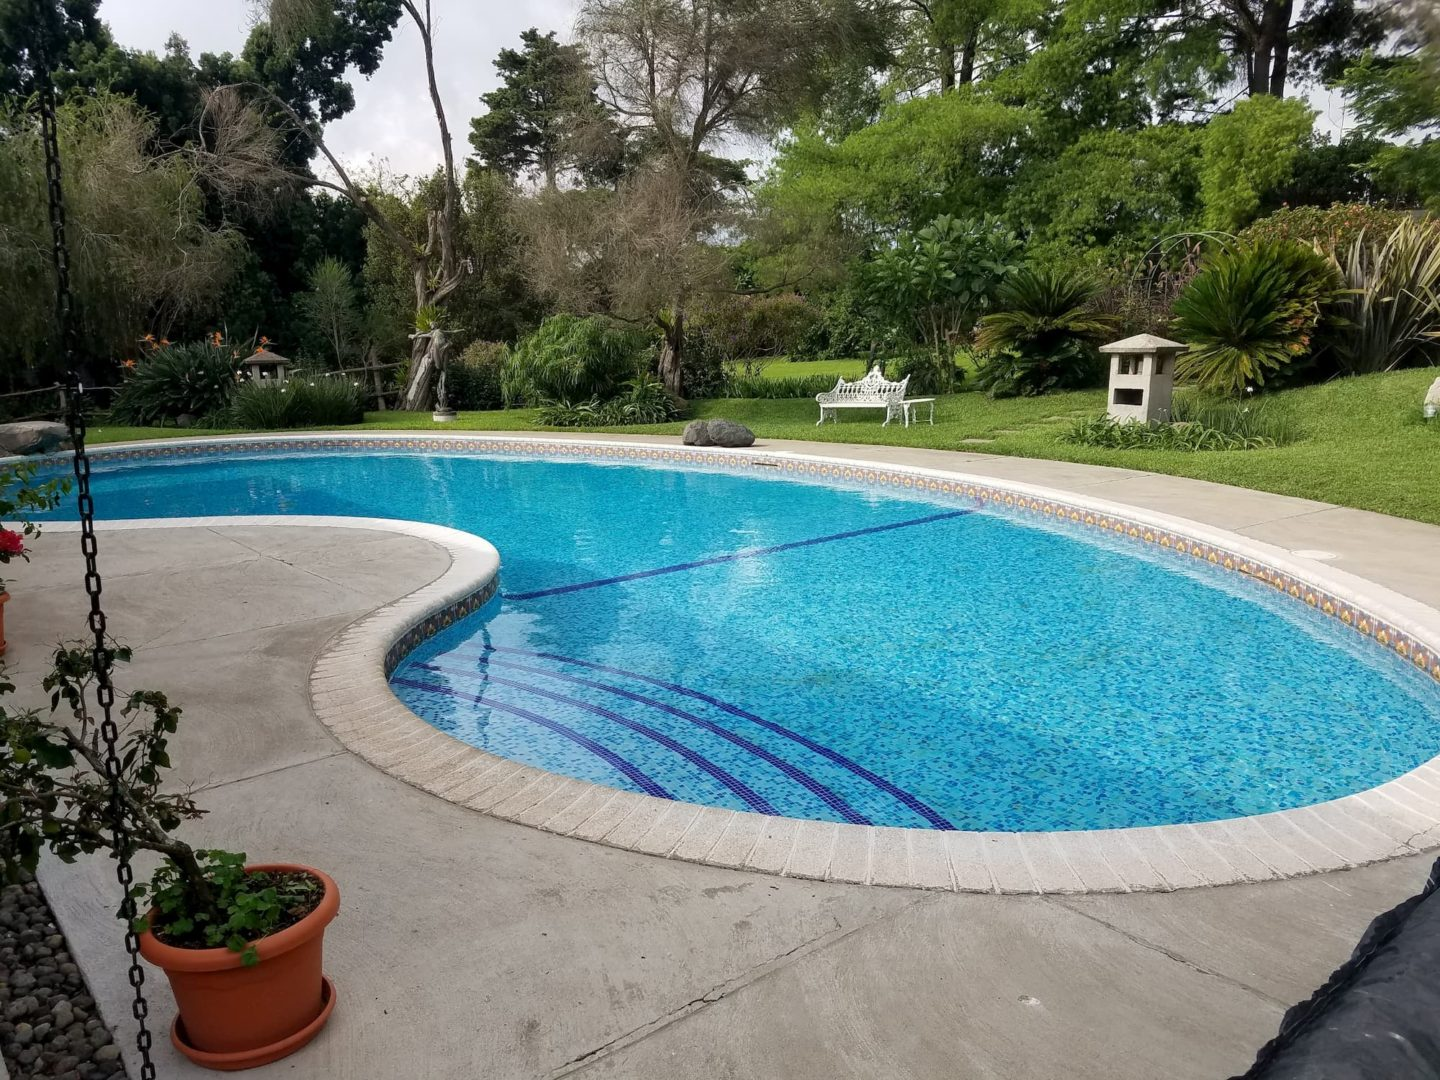 Blue pool in the backyard, beautiful yard - Does a Pool Add Value to Your House